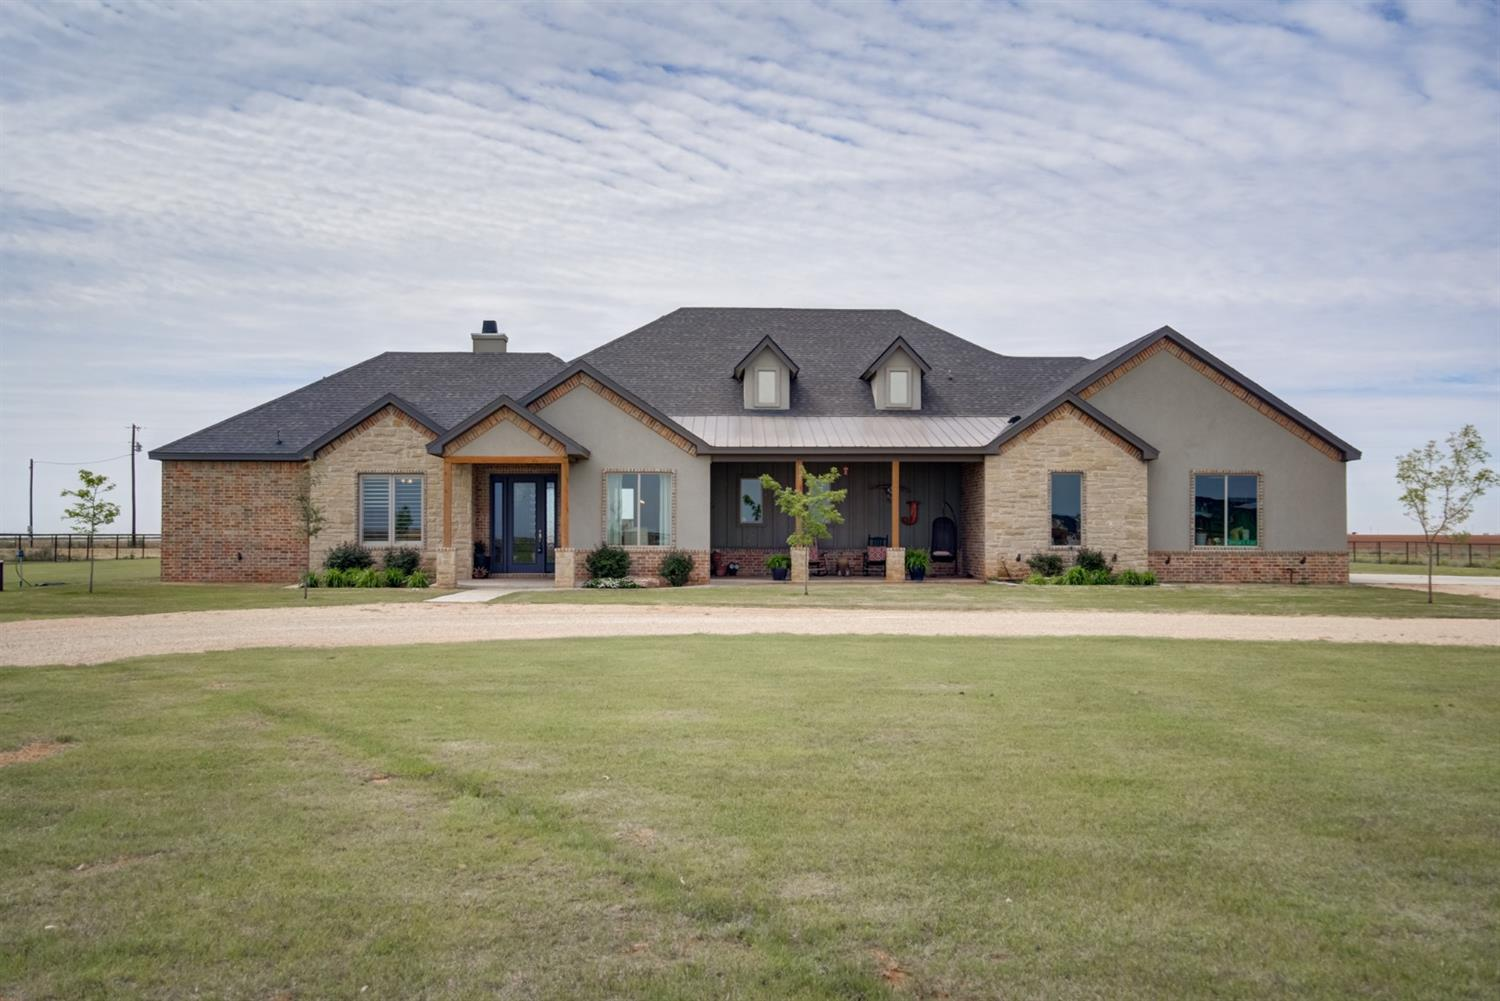 WOW!!! You will fall in love with this Amazing Home from the second you drive up!!  I also have a 360 Video for you to view!  Home is located in New Home School District. Great Location, just 3 min from school.  Home sits on 2 acres with highway frontage.  3/3/3 with office. Some features of this home, Oversized 3 car garage, office, pipe fence all around, great porches, great storage, huge closets, mudroom, laundry room off the master closet, beautiful windows, great views, bar/coffee serving area to patio, amazing brick wall and so much more.  Let me tell you about this Kitchen~ Cooks Dream! huge Bar/ Island,  tons of cabinets, gas cooktop,2 ovens, built-in side by side fridge all stainless, Has a Butler's Pantry that is like a 2nd Kitchen, great prep area, sink and tons of countertop area and cabinets. Isolated Master BR with Amazing Bathroom and HUGE Closet. All bedrooms have large walk-in closets! Jack-n-jill BR . 1/2 bath for quest. Foam Insulation,Plantation Shutters.